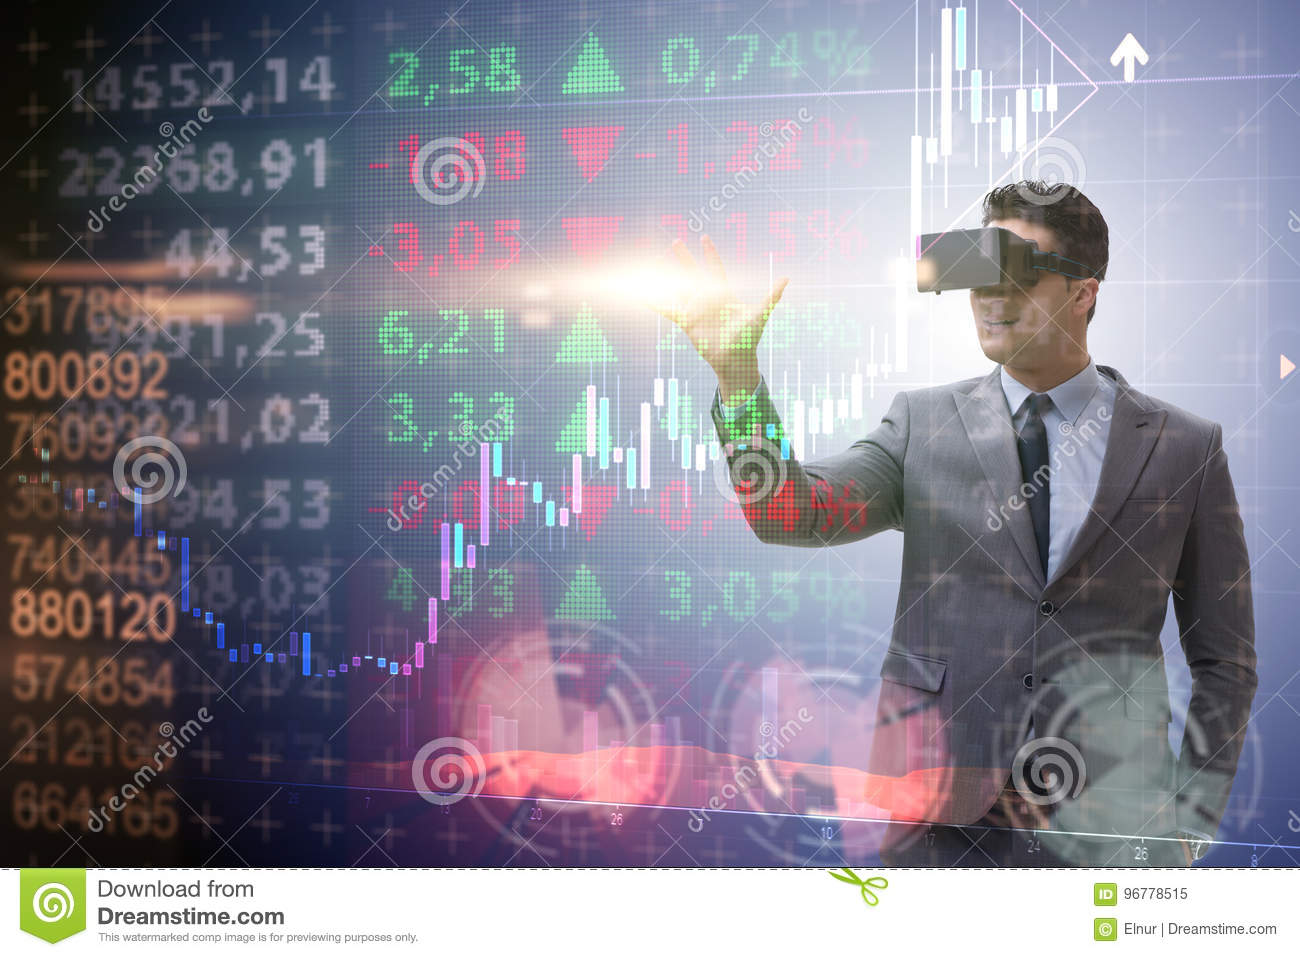 The businessman in virtual reality trading on stock market